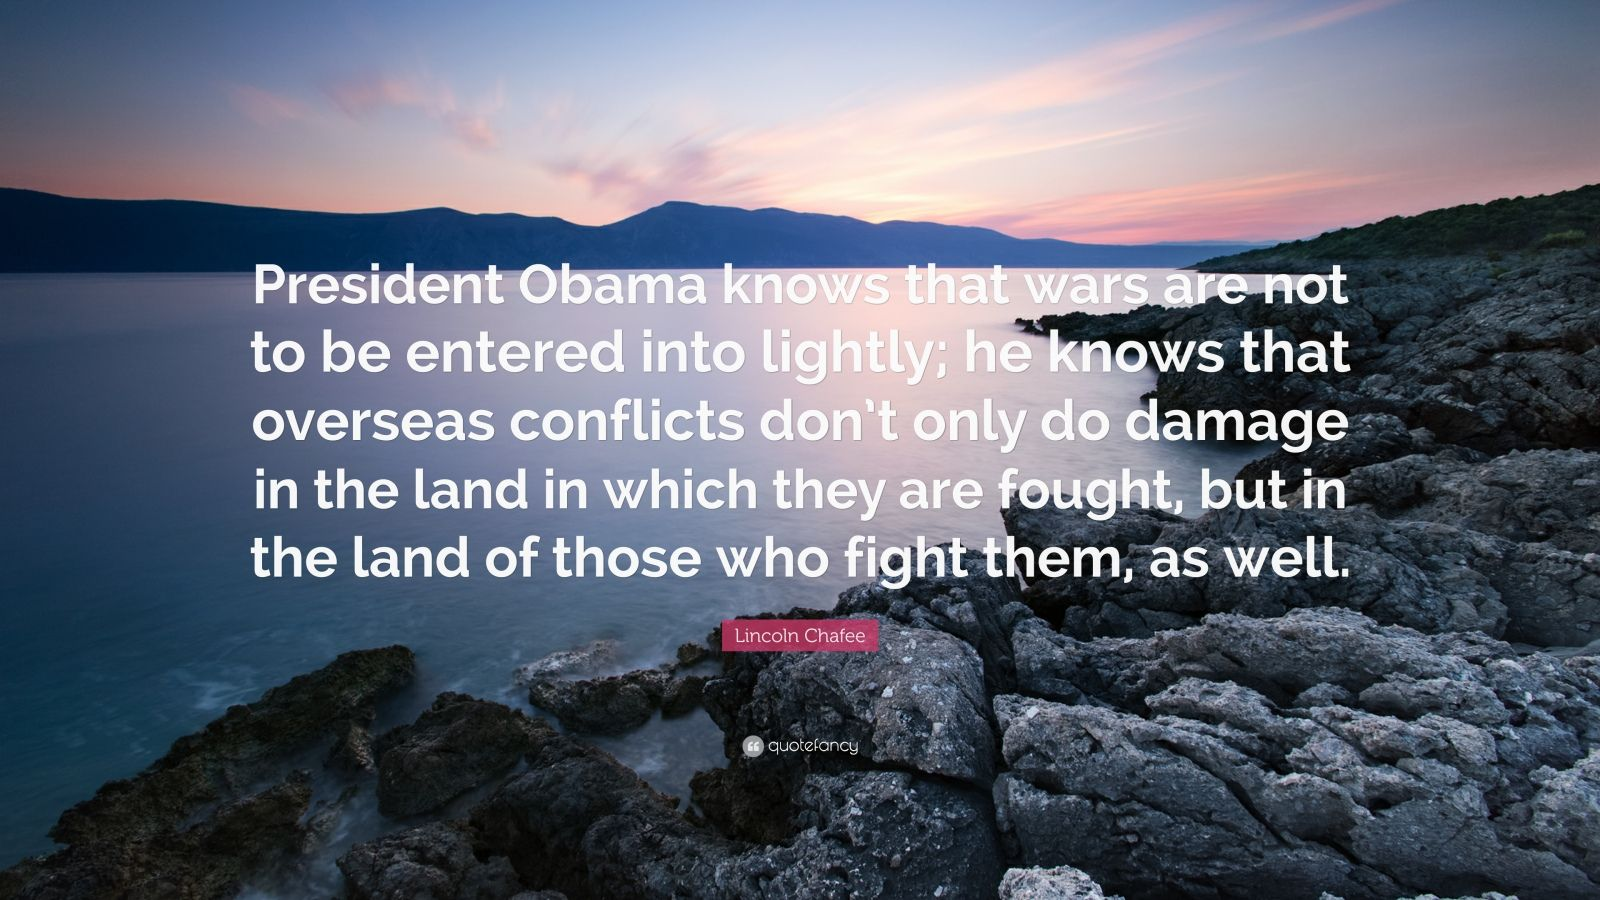 """Lincoln Chafee Quote: """"President Obama knows that wars are not to be entered into lightly; he knows that overseas conflicts don't only do damage in the land in which they are fought, but in the land of those who fight them, as well."""""""